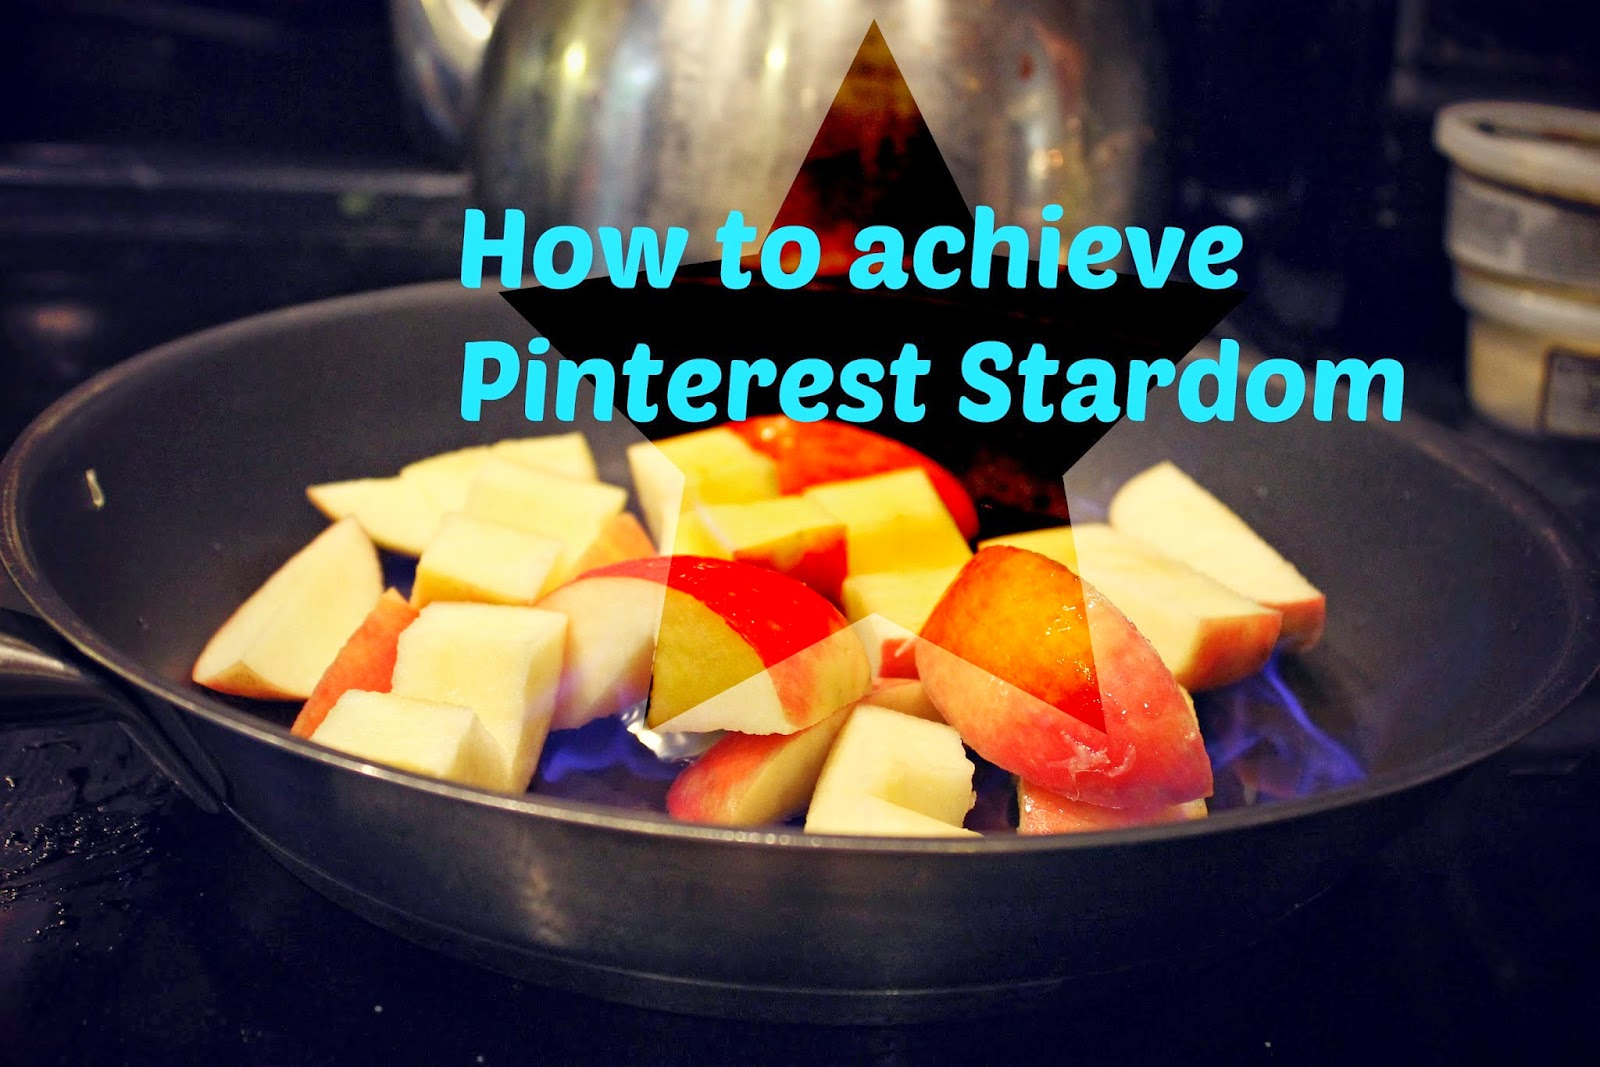 How to achieve Pinterest Stardom